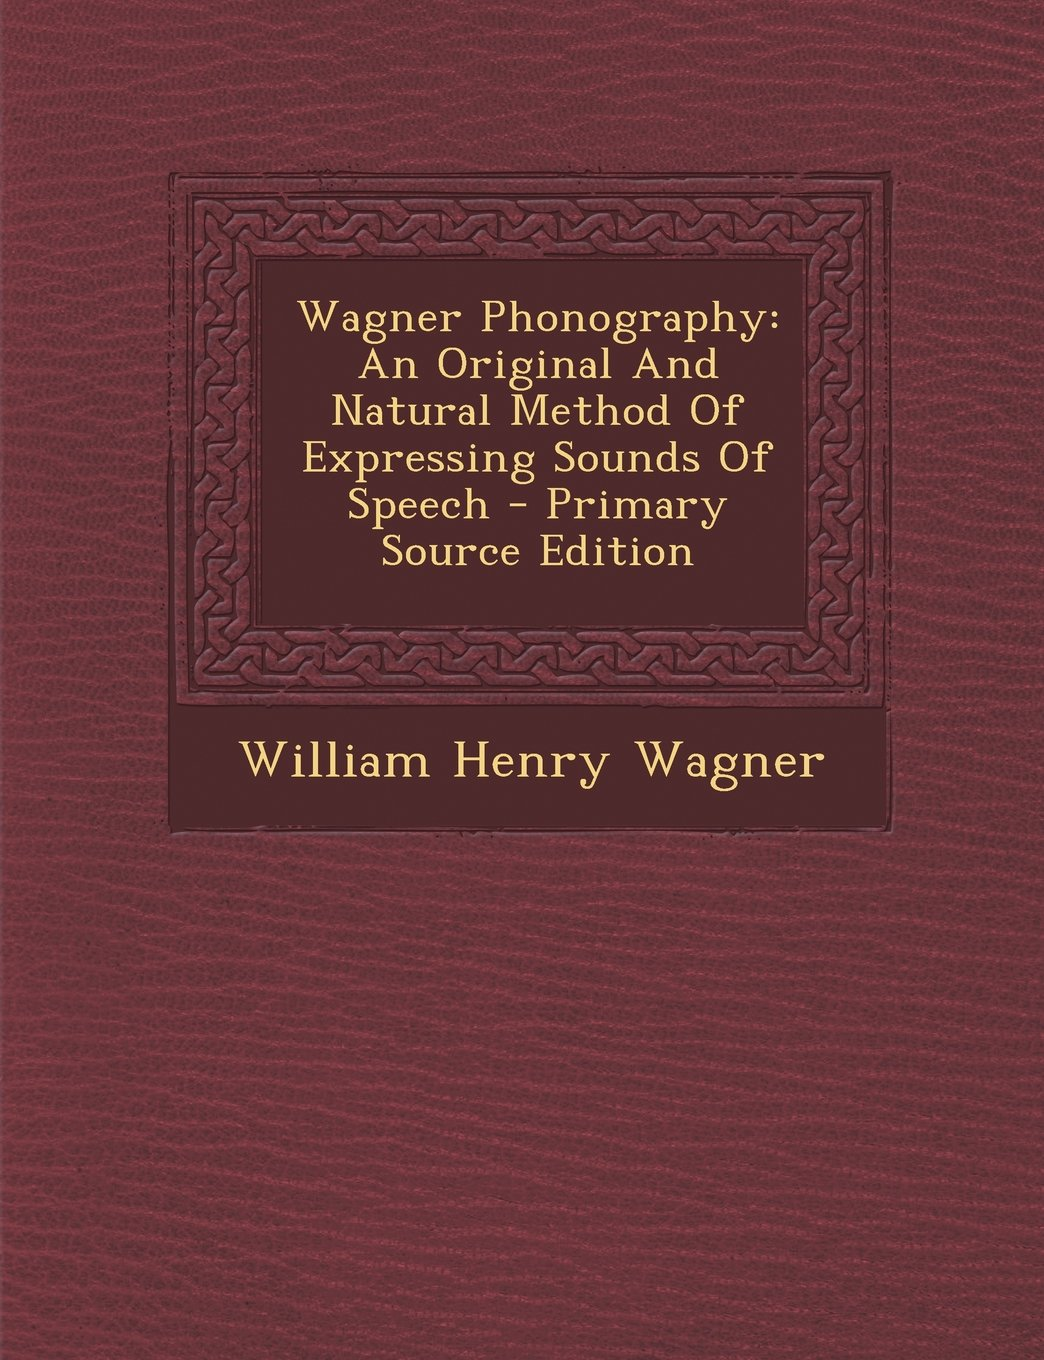 Download Wagner Phonography: An Original and Natural Method of Expressing Sounds of Speech - Primary Source Edition PDF